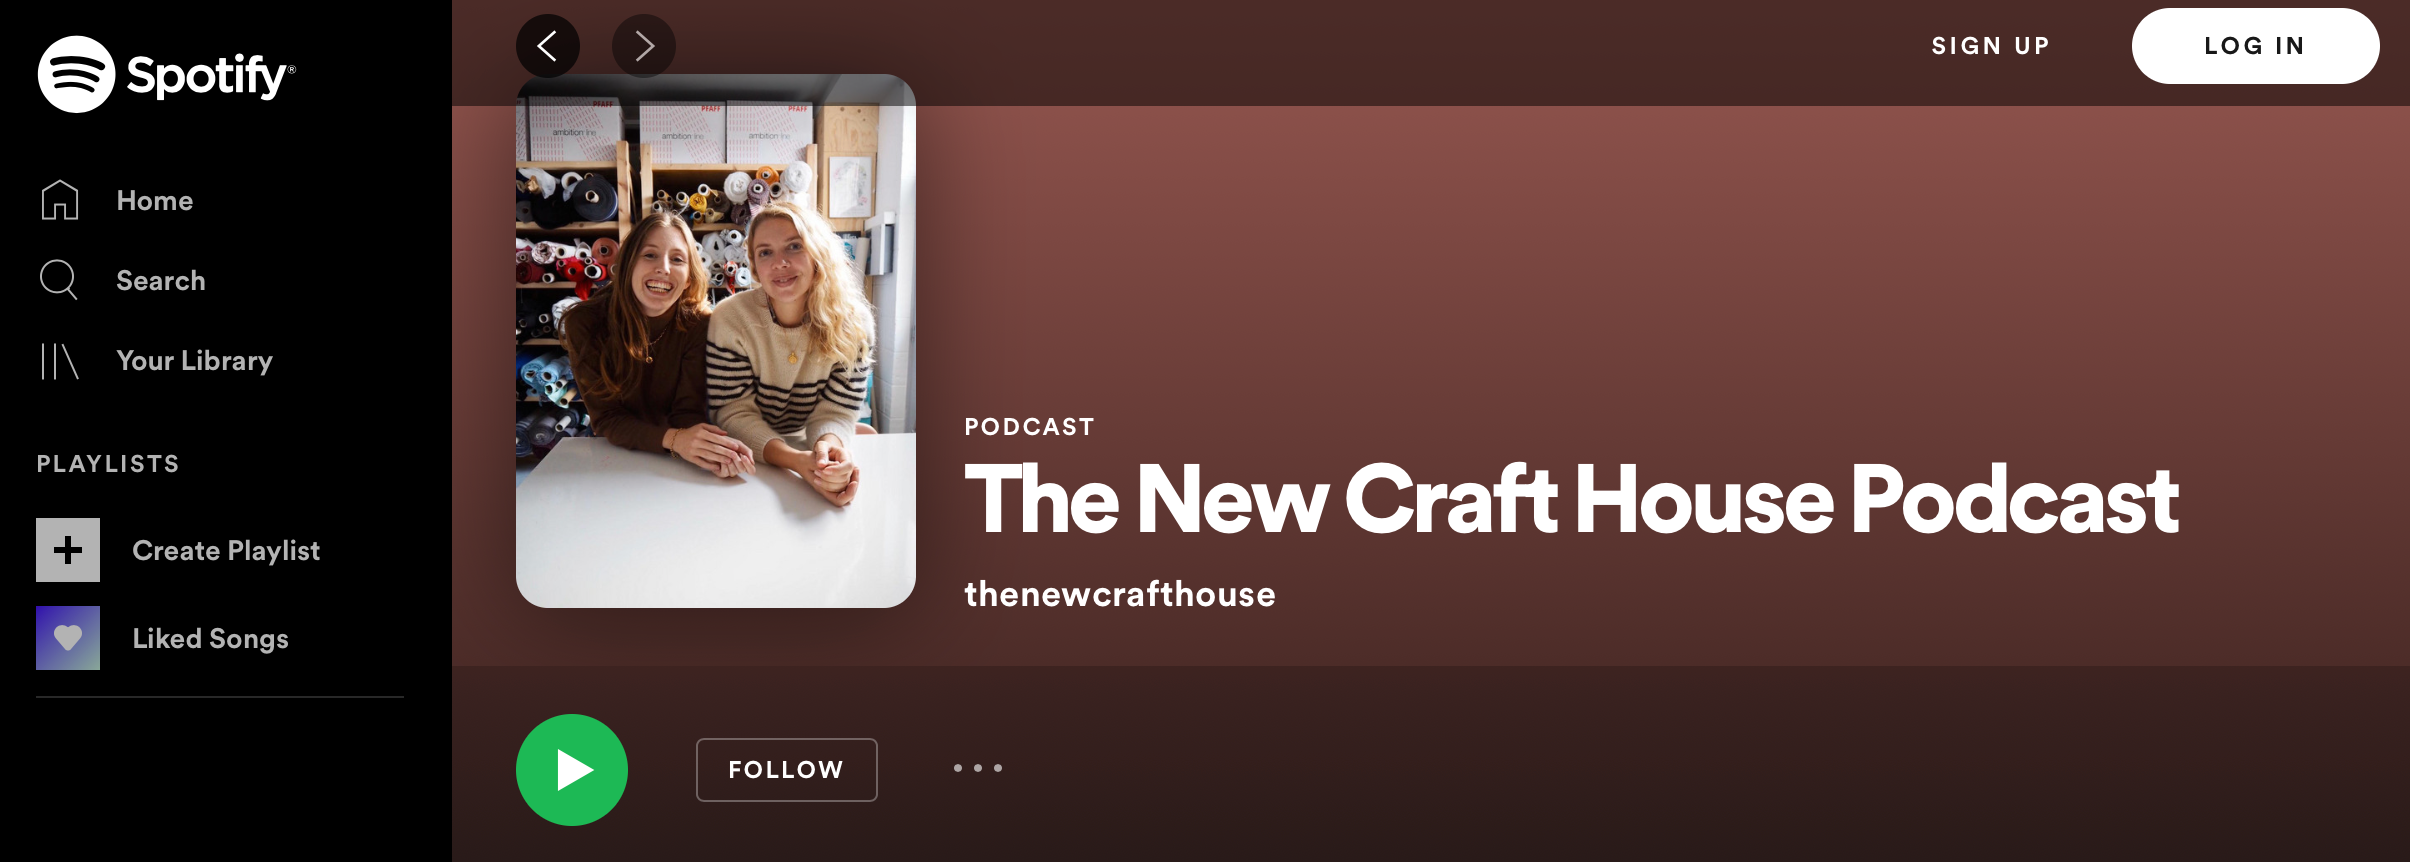 THE NEW CRAFT HOUSE PODCAST SPOTIFY